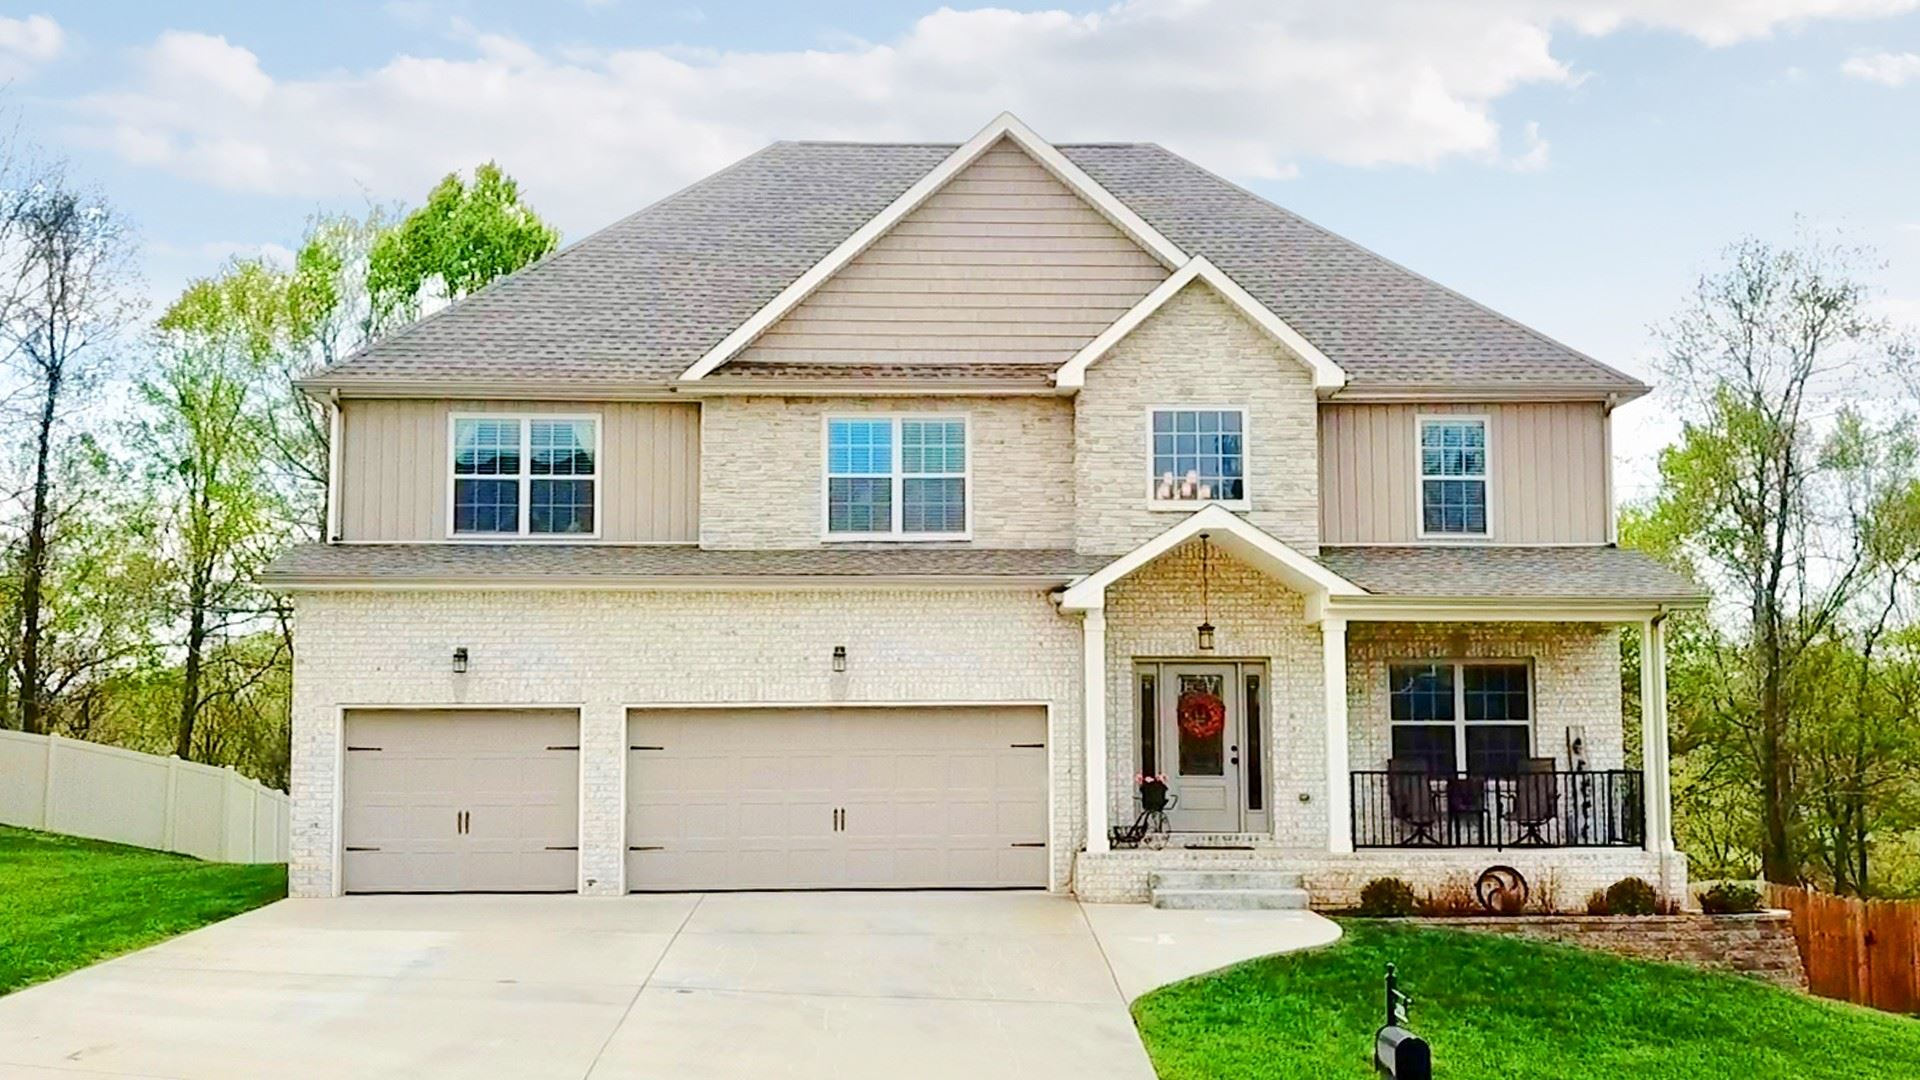 Photo of 3153 Timberdale Dr, Clarksville, TN 37042 (MLS # 2246784)